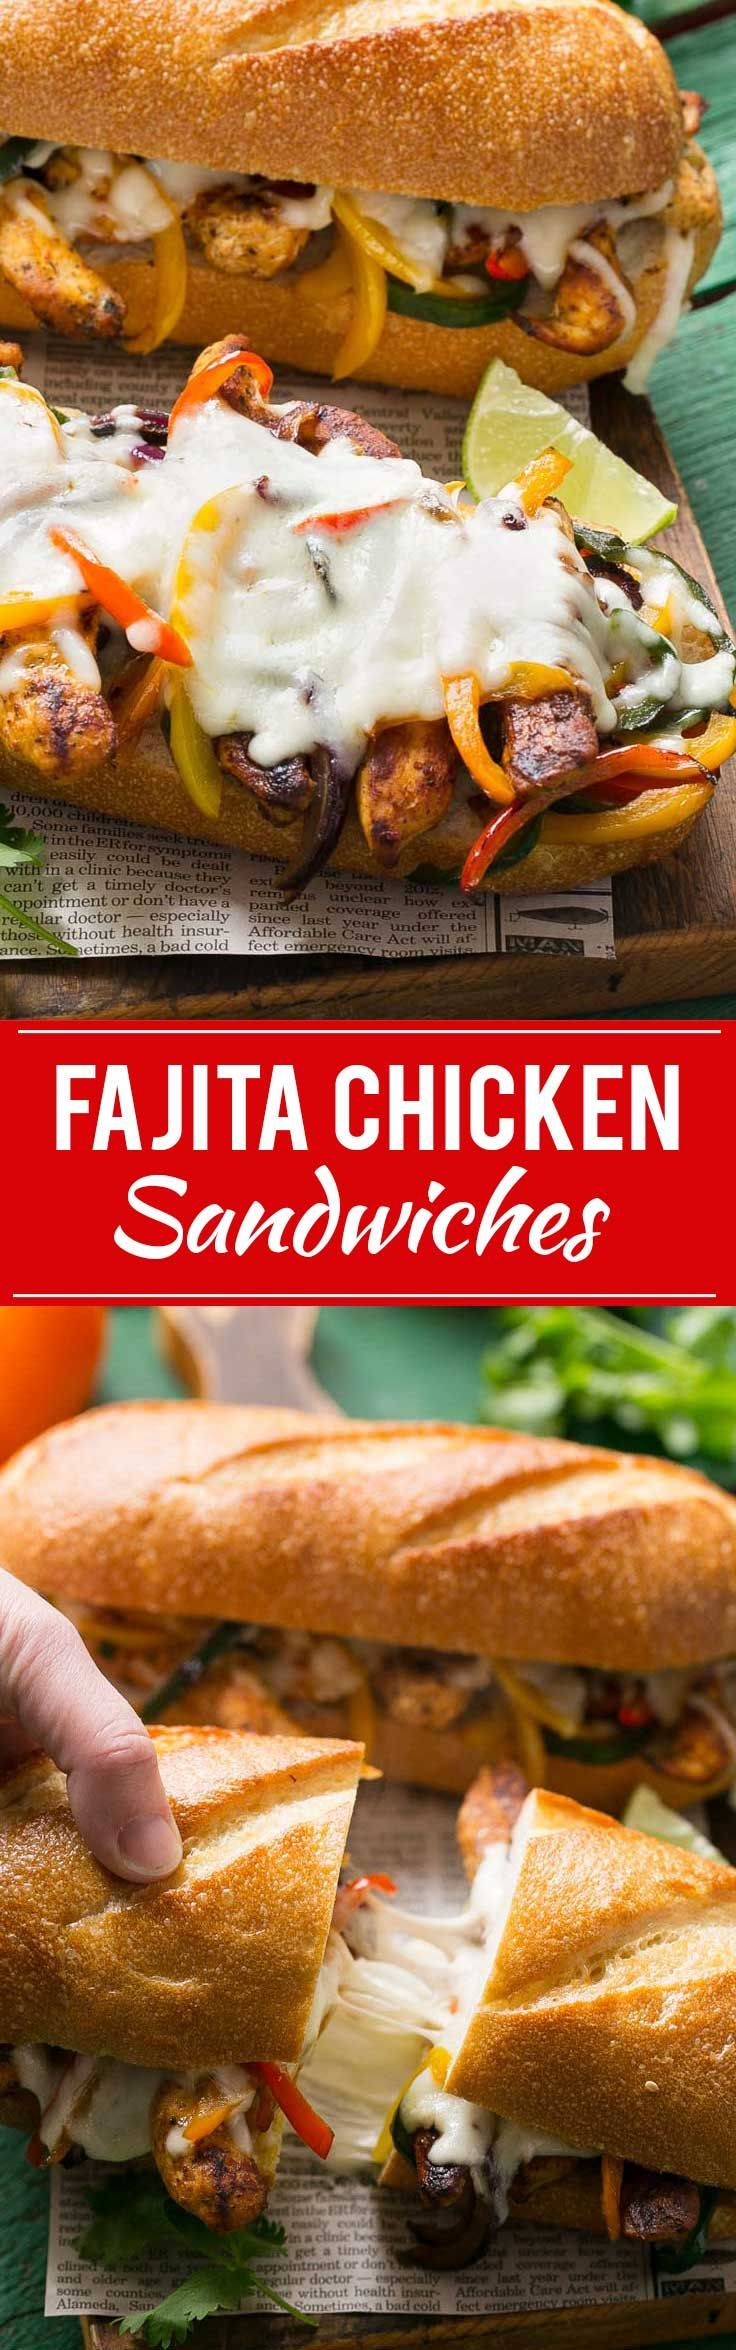 These fajita chicken cheesesteak sandwiches are full of spiced chicken, peppers and lots of cheese, all on a toasted roll.